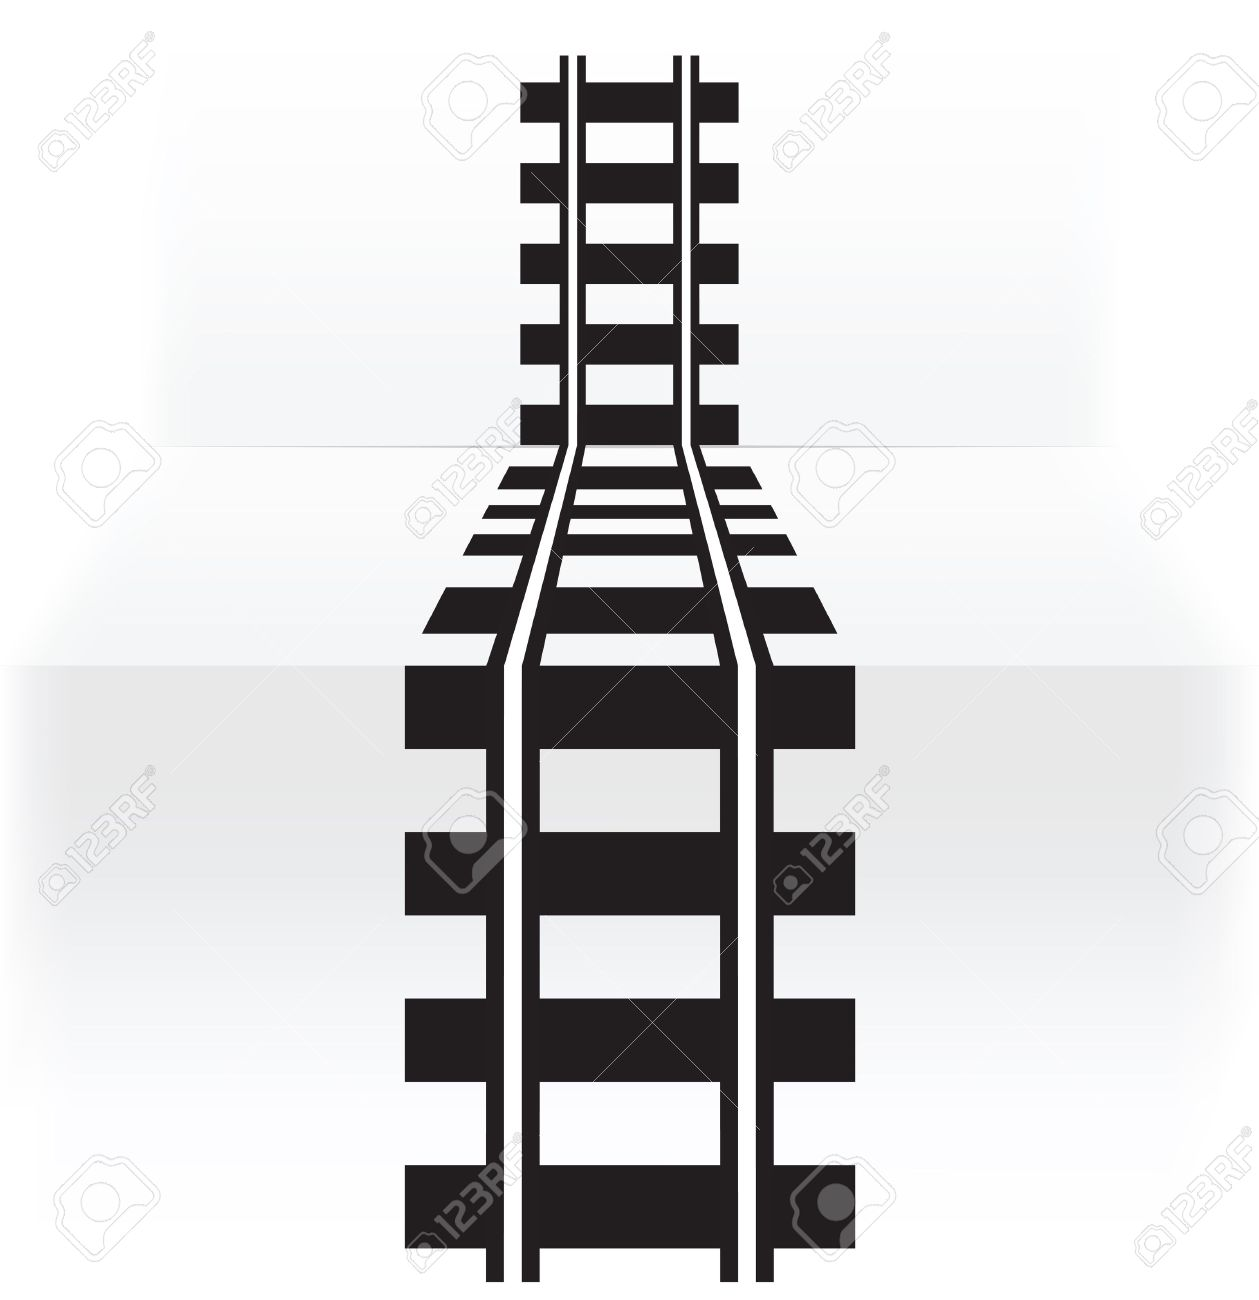 Railway Royalty Free Cliparts, Vectors, And Stock Illustration.